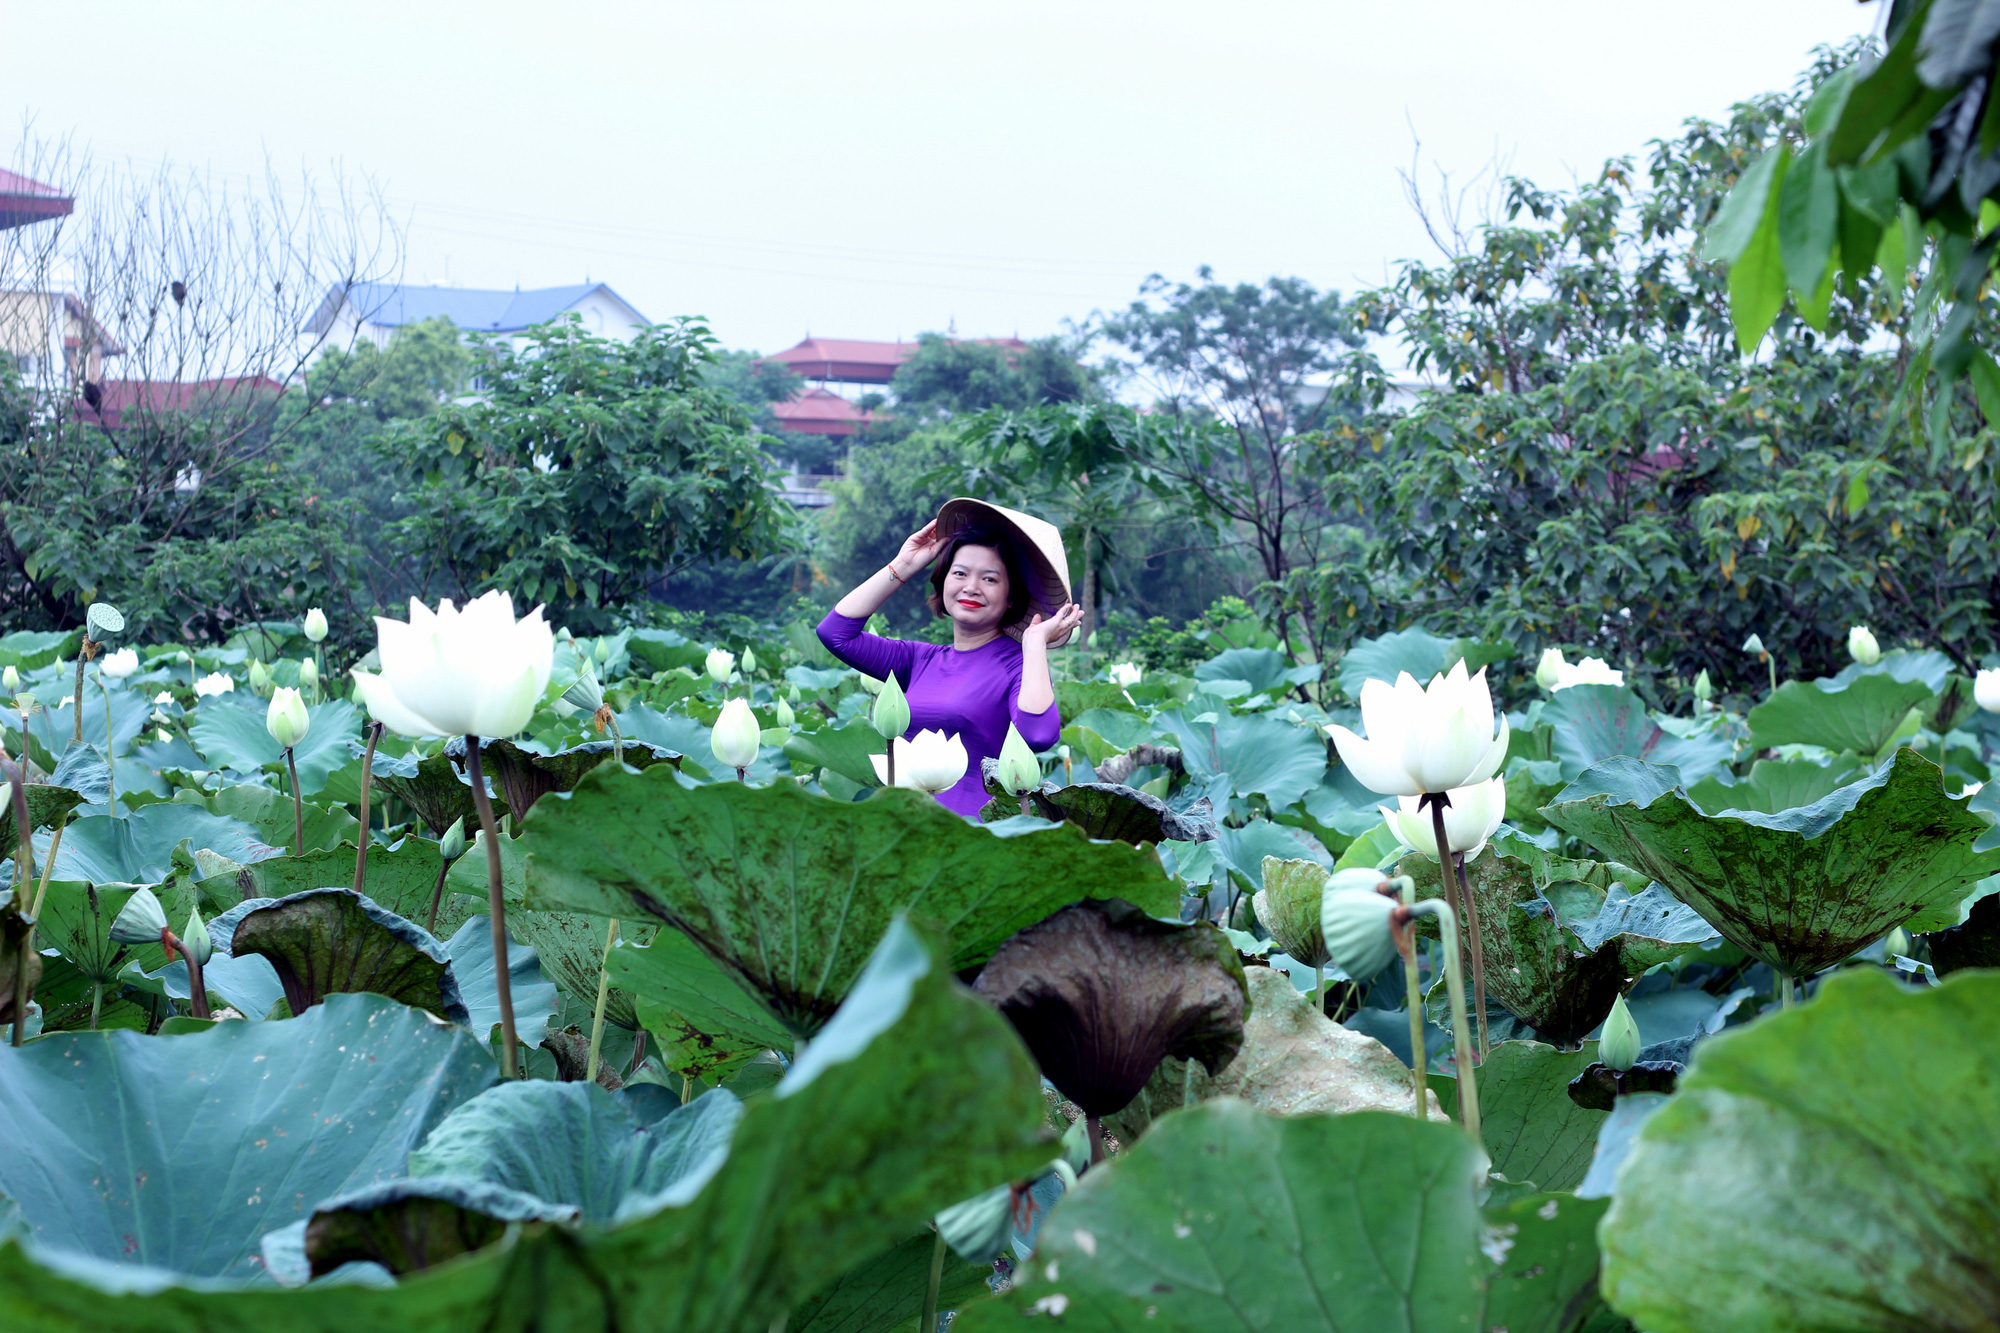 Check out this white lotus pond on the outskirts of Hanoi